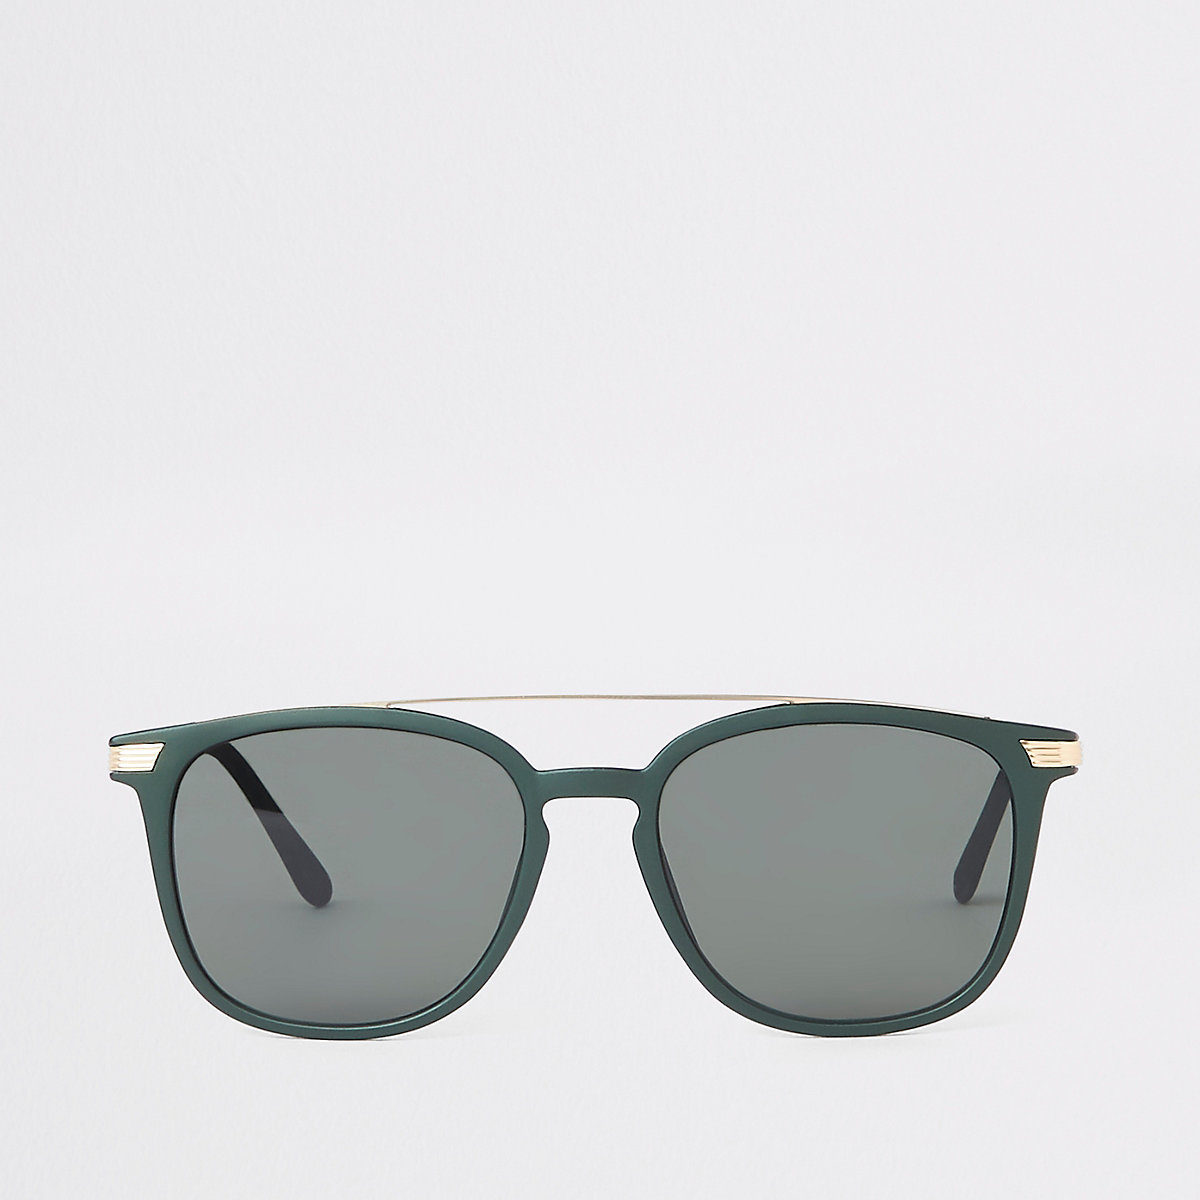 Khaki green brow bar navigator sunglasses